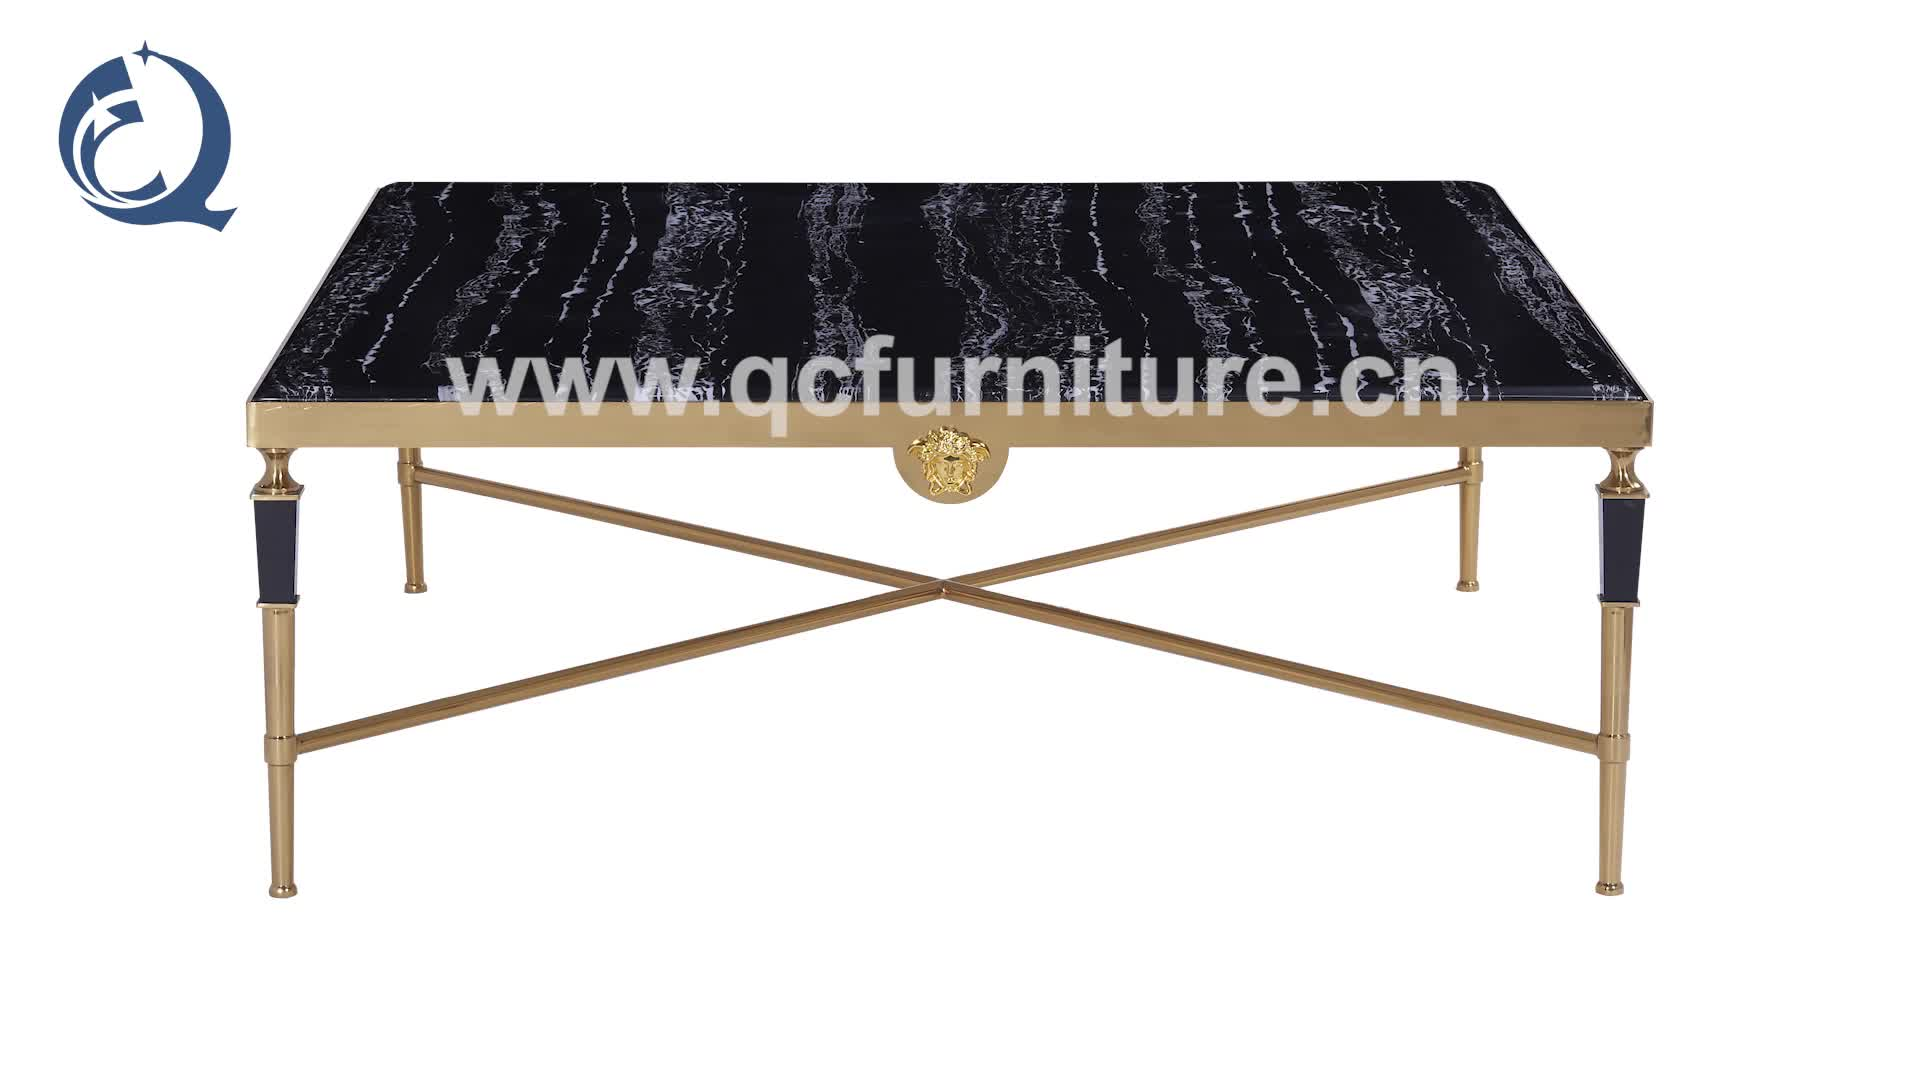 Luxury Living Room furniture Marble Top Golden stainless steel leg  Coffee Table